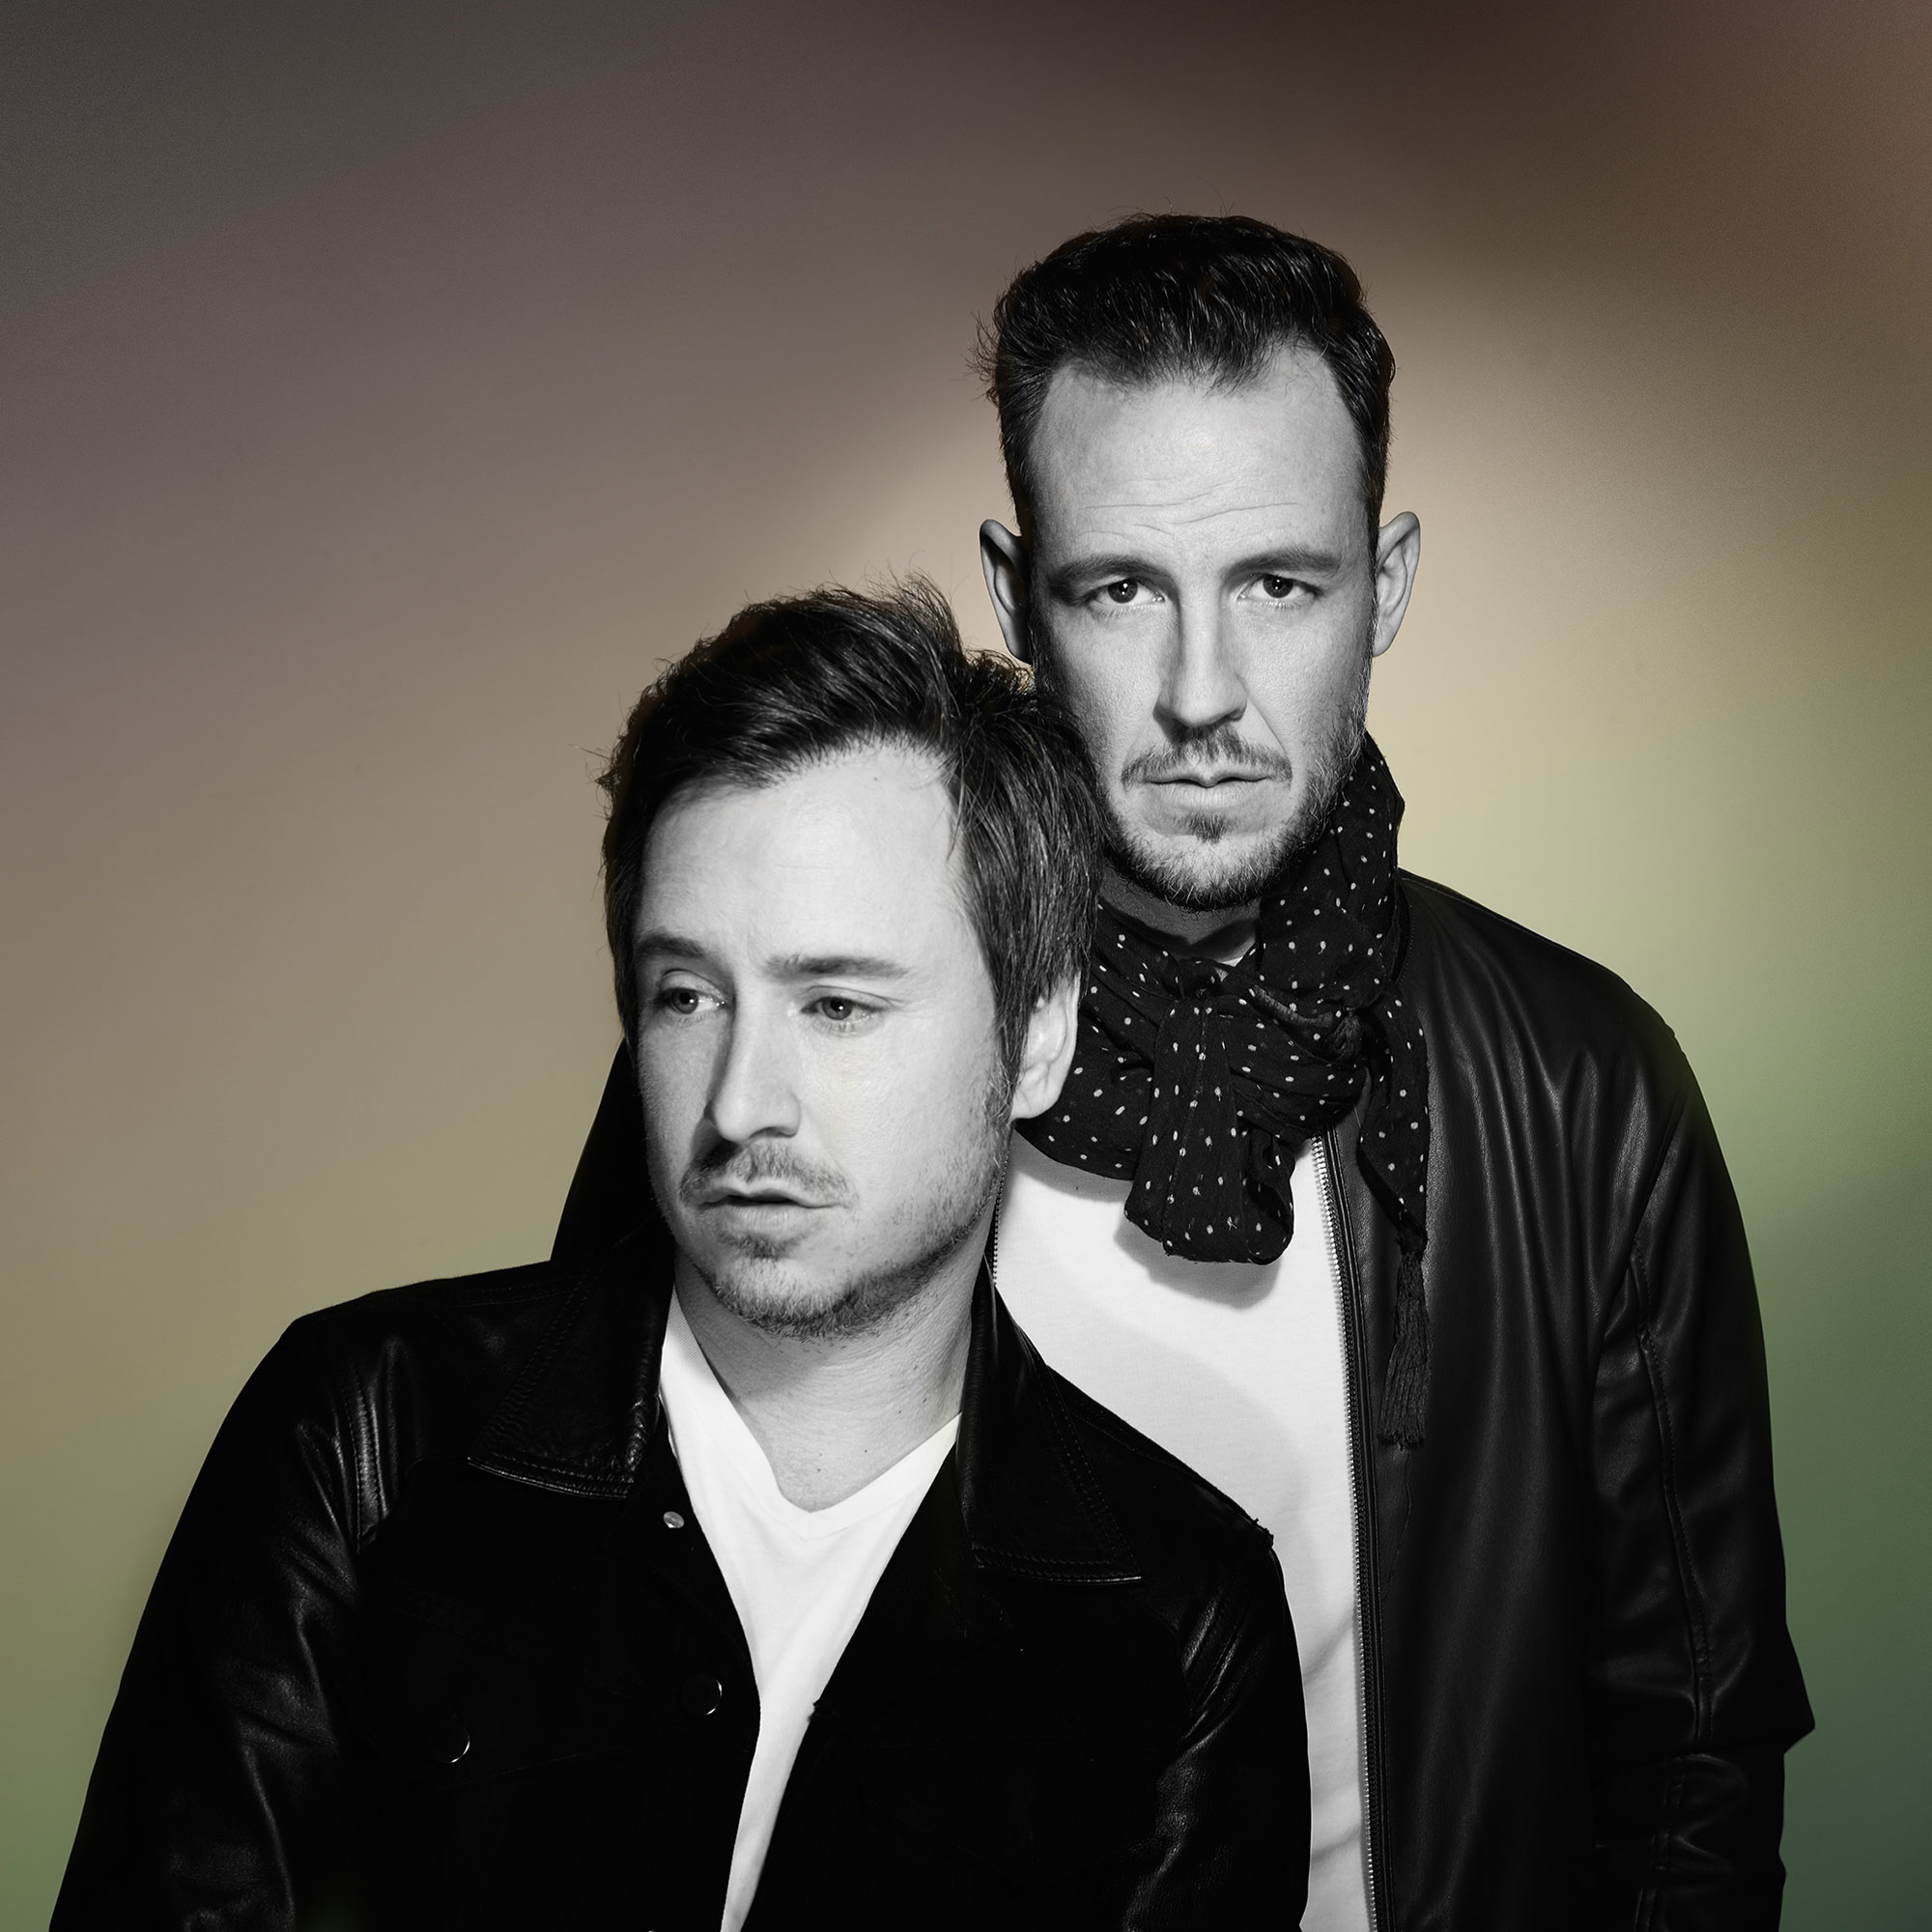 Stevans, Renaissance, about the electro-pop swiss band, Yvan Franel and Yann Secrest, music